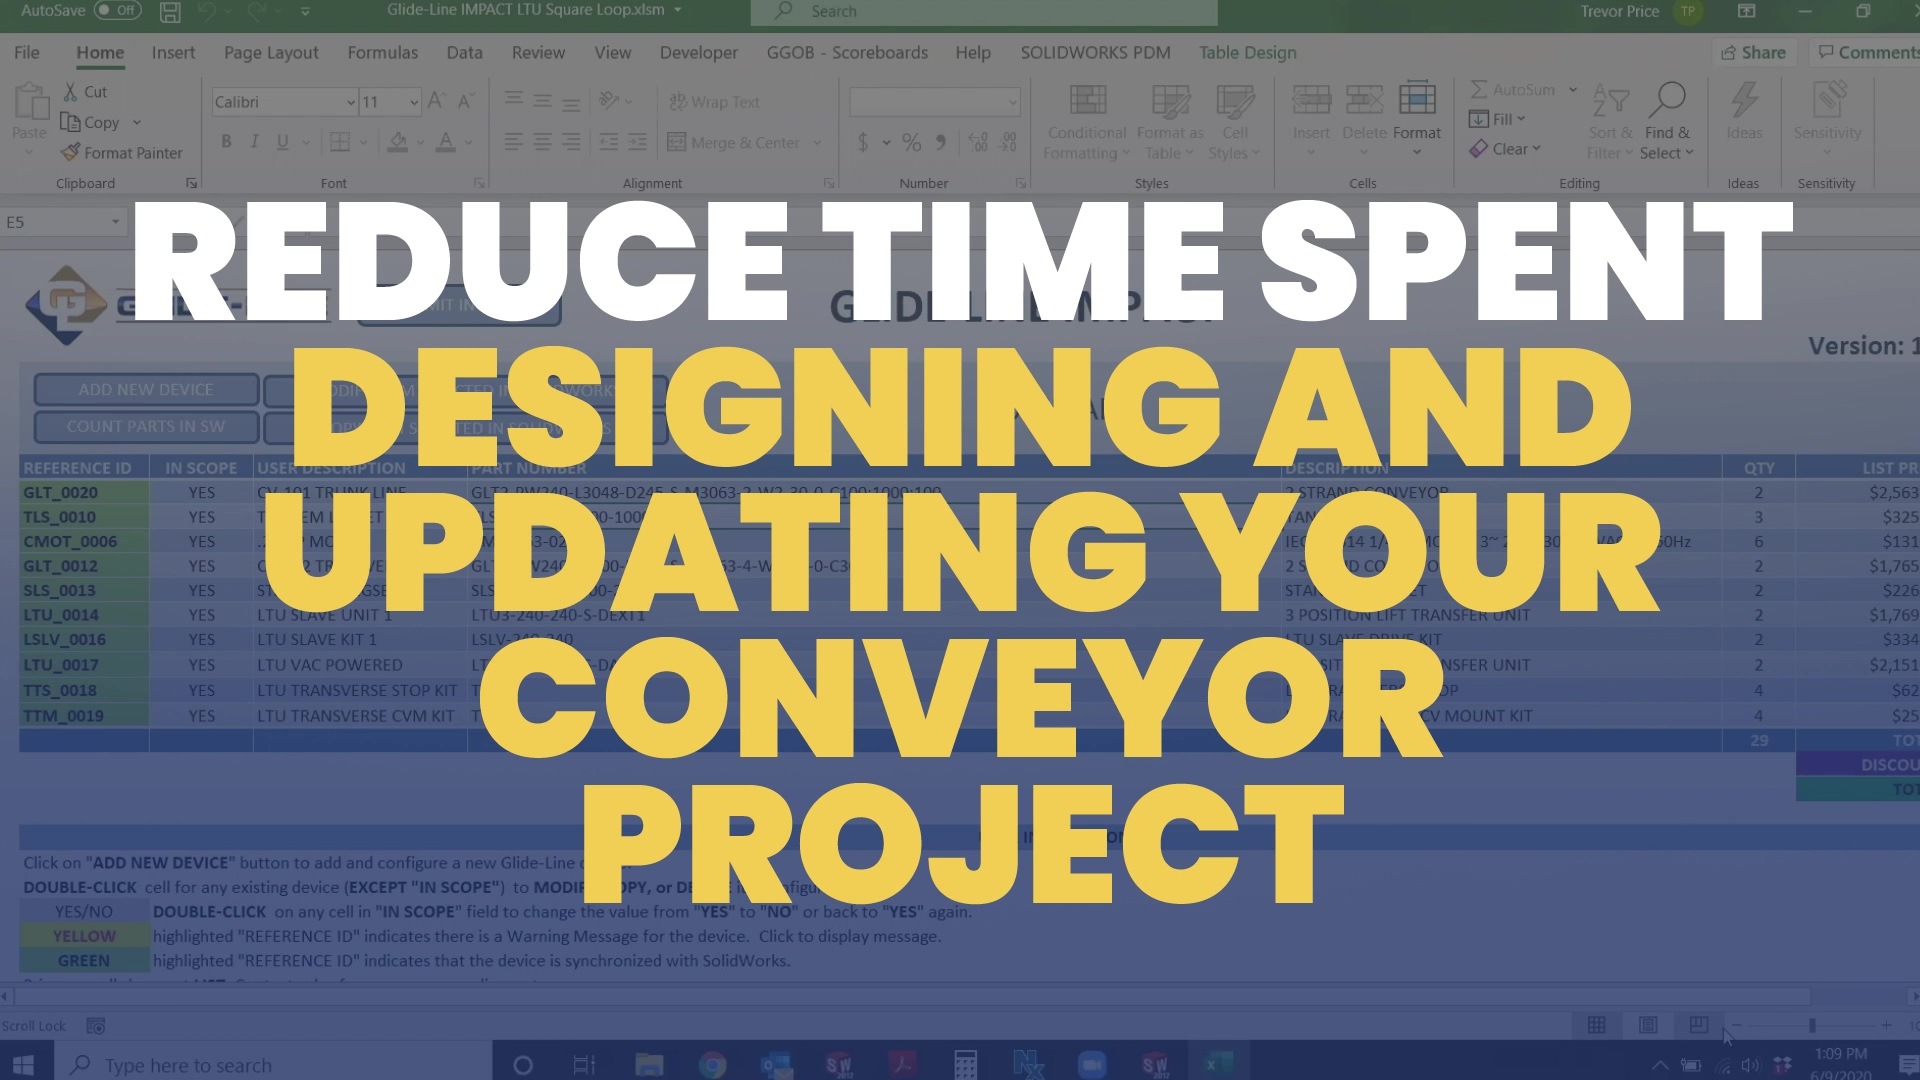 How To Reduce Time Spent Designing and Updating Your Conveyor Project